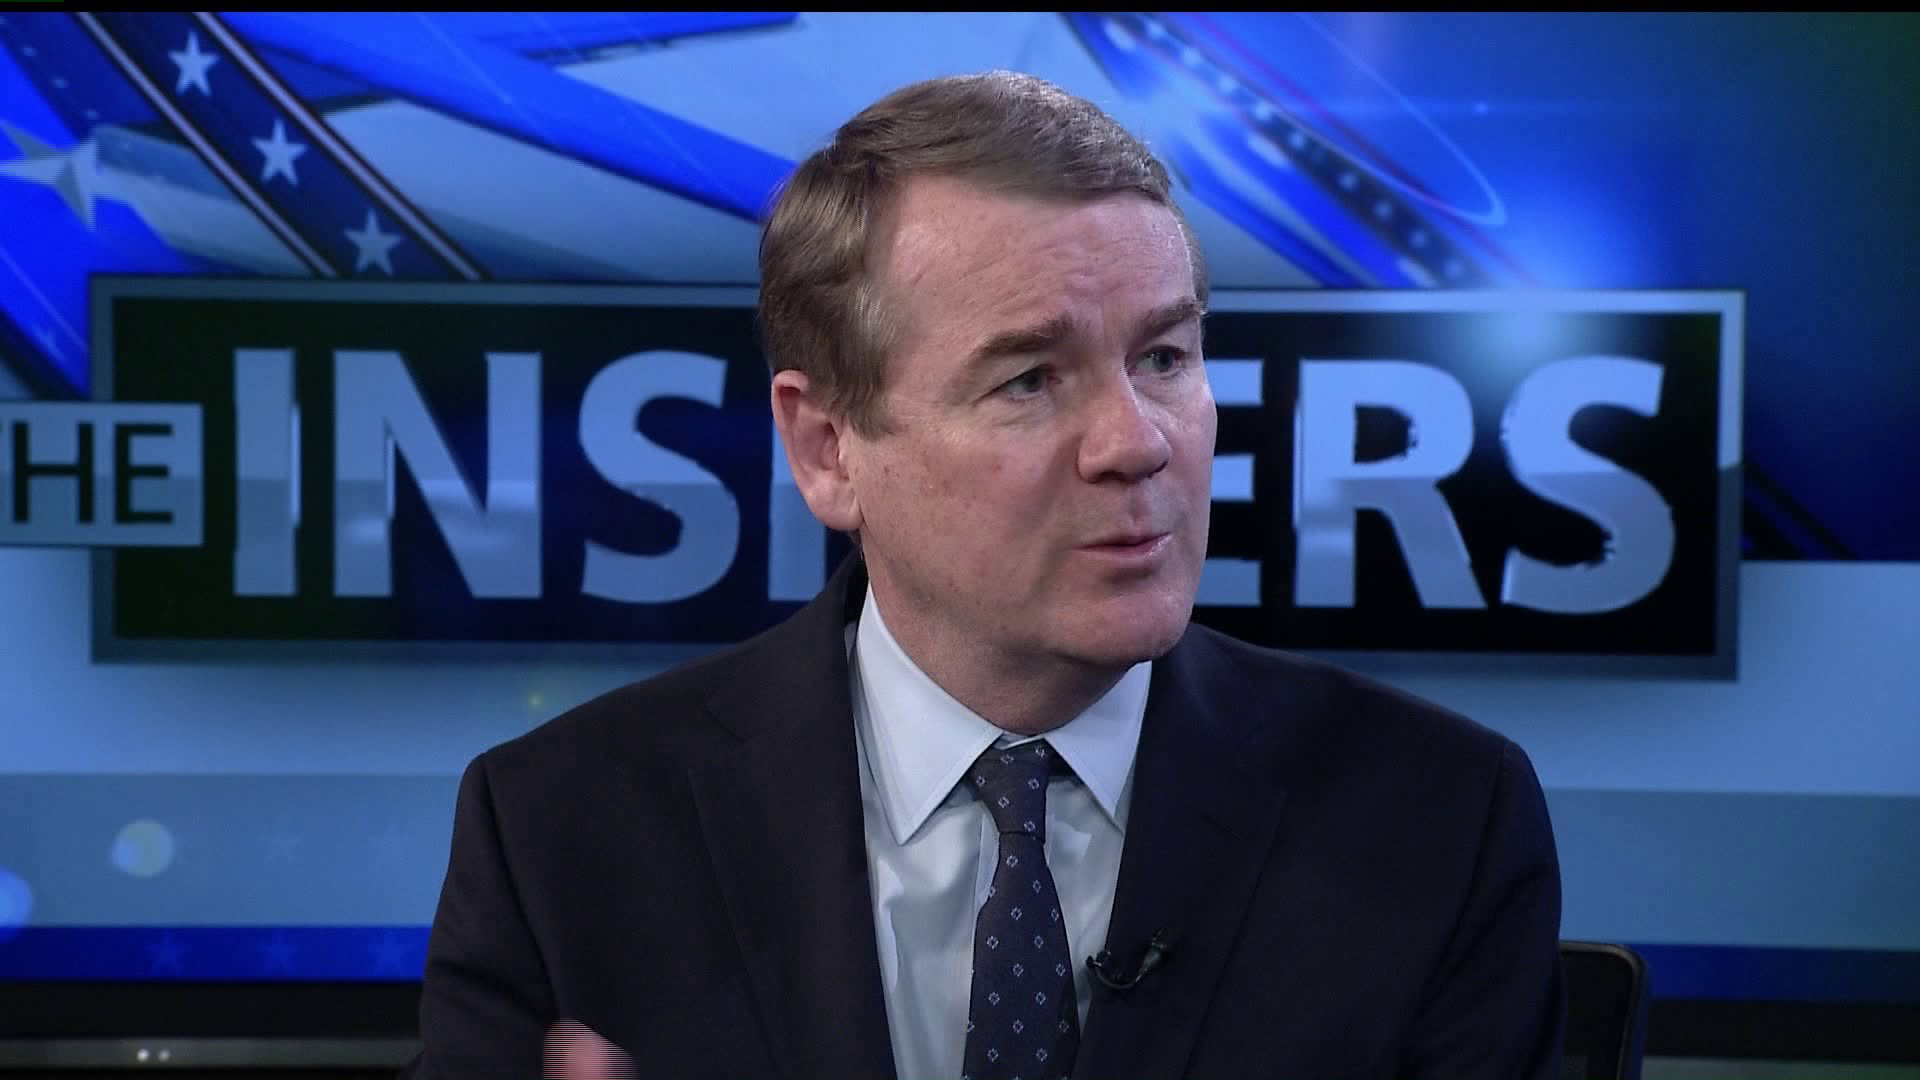 Insiders 12/29/19: Michael Bennet Believes His Moderate Approach is Key to Beating President Trump 13